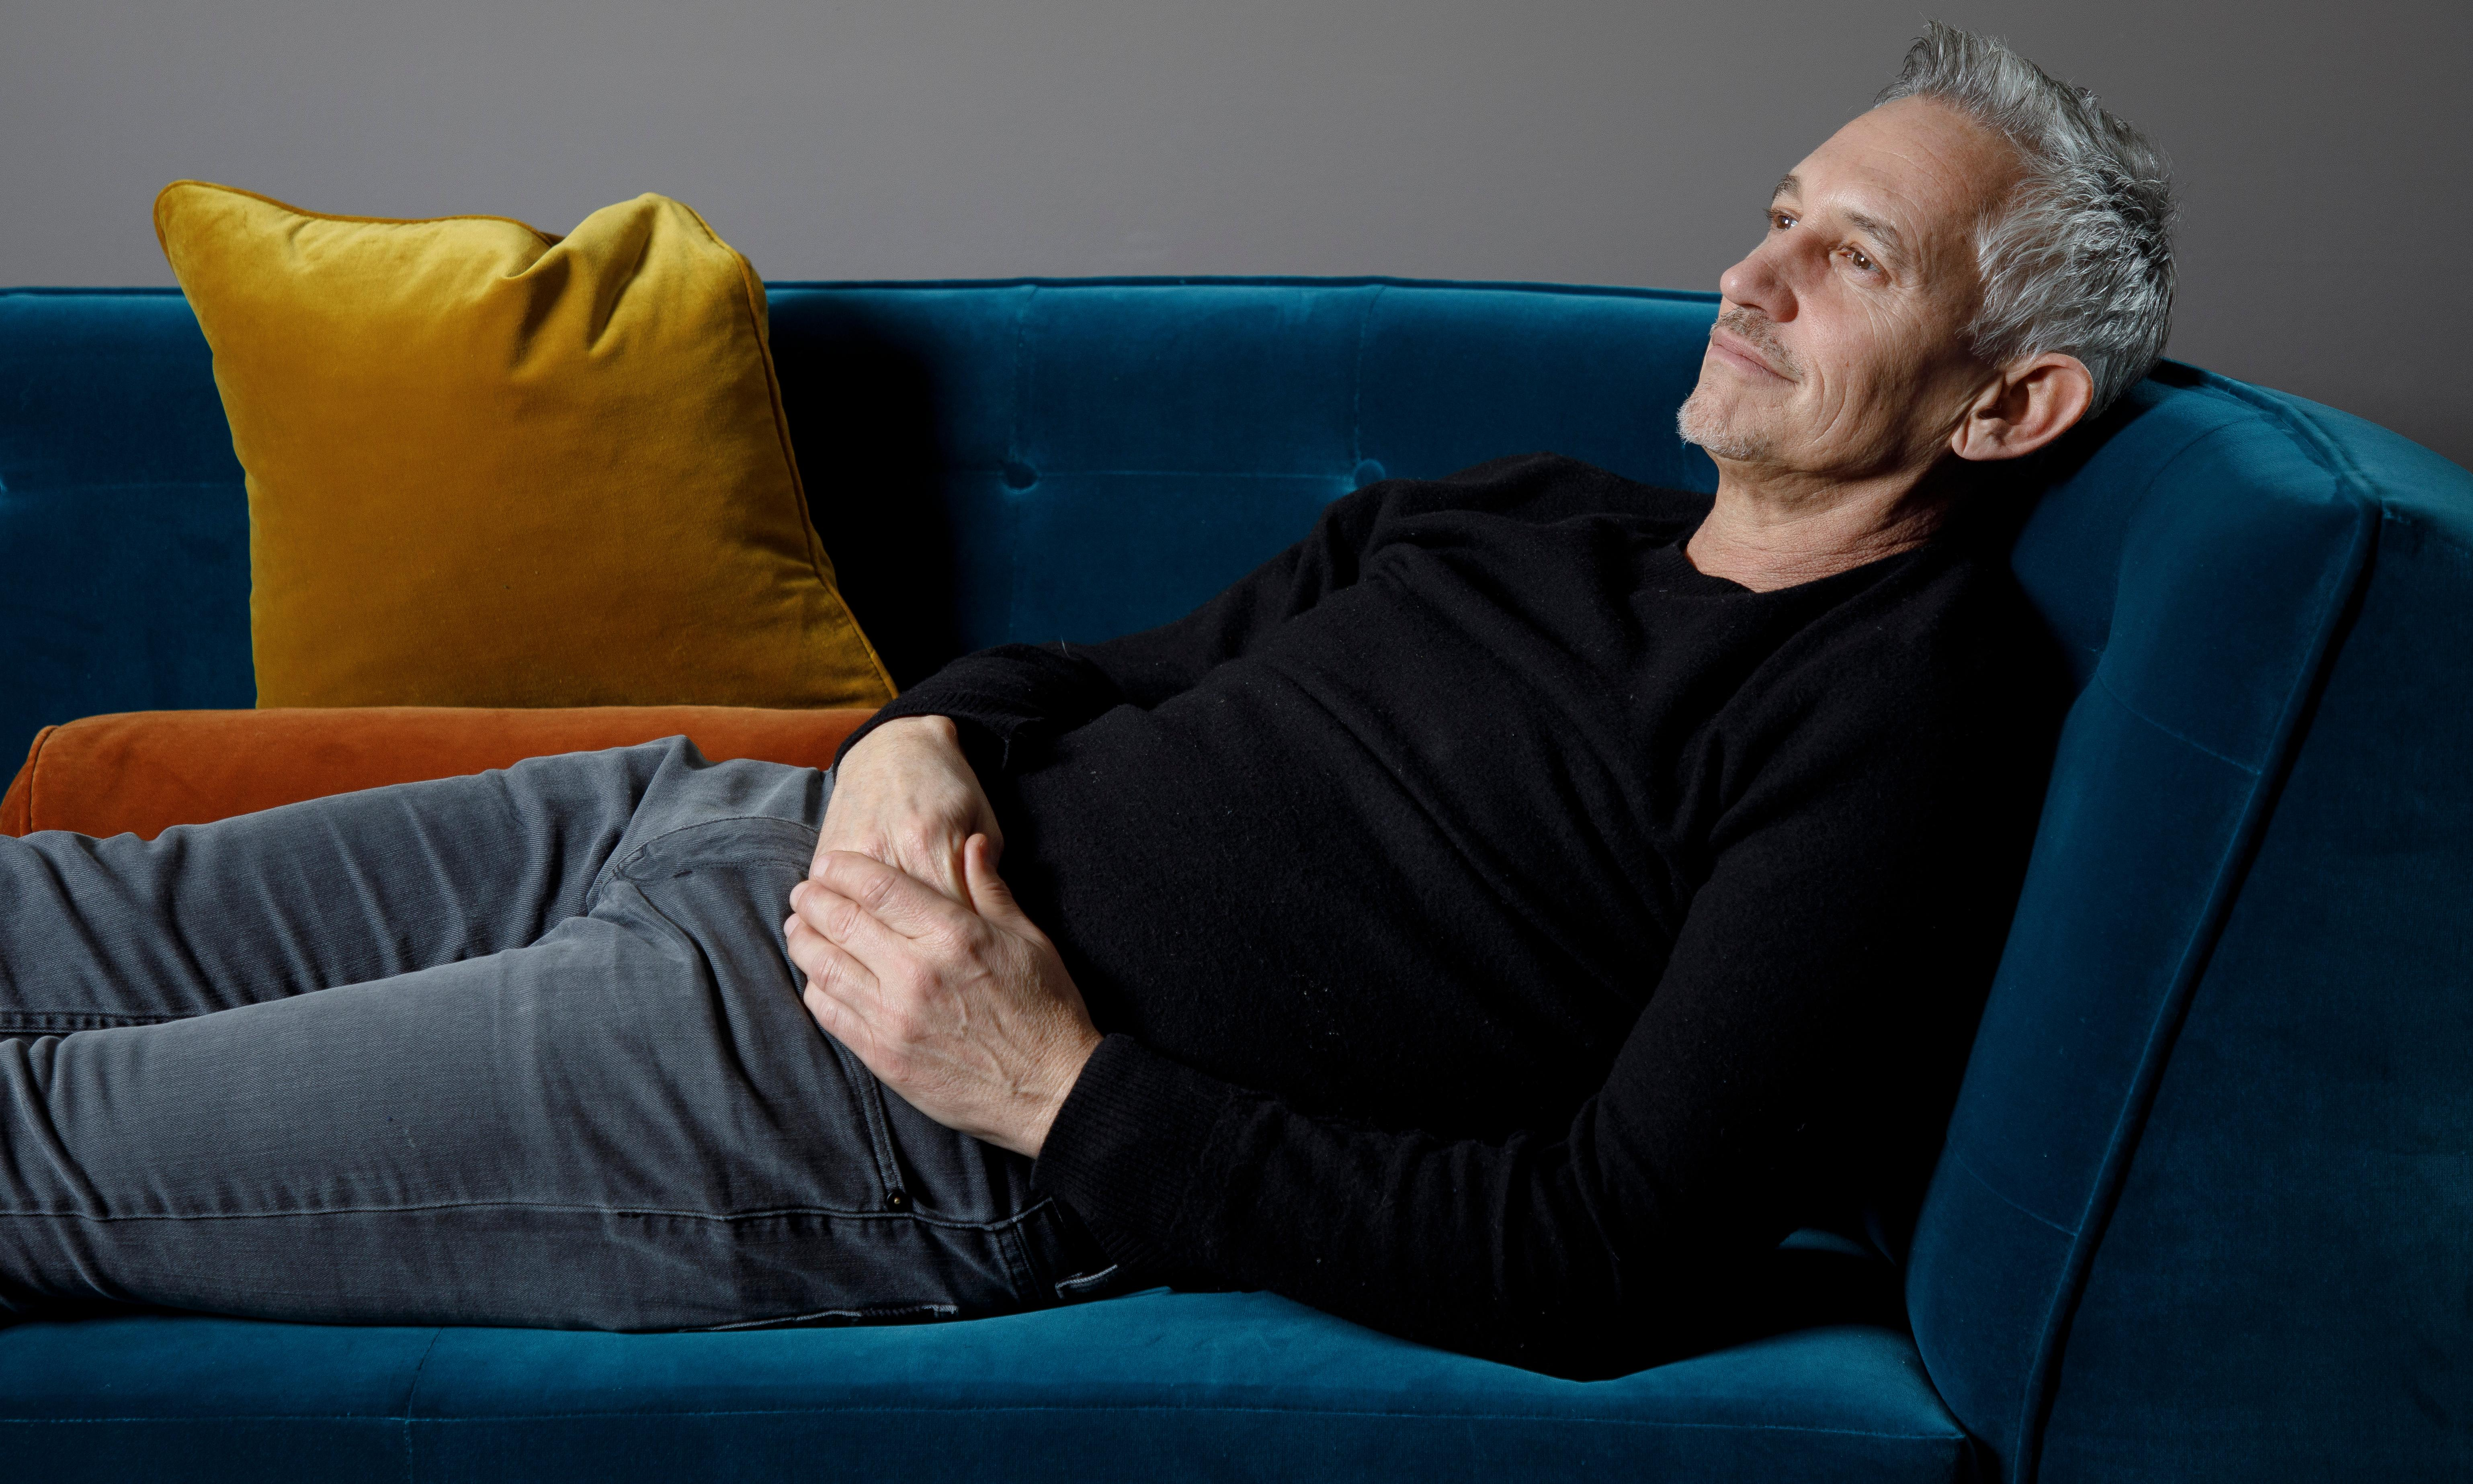 Gary Lineker: 'Put my 1990 team against a modern team and we'd get murdered'